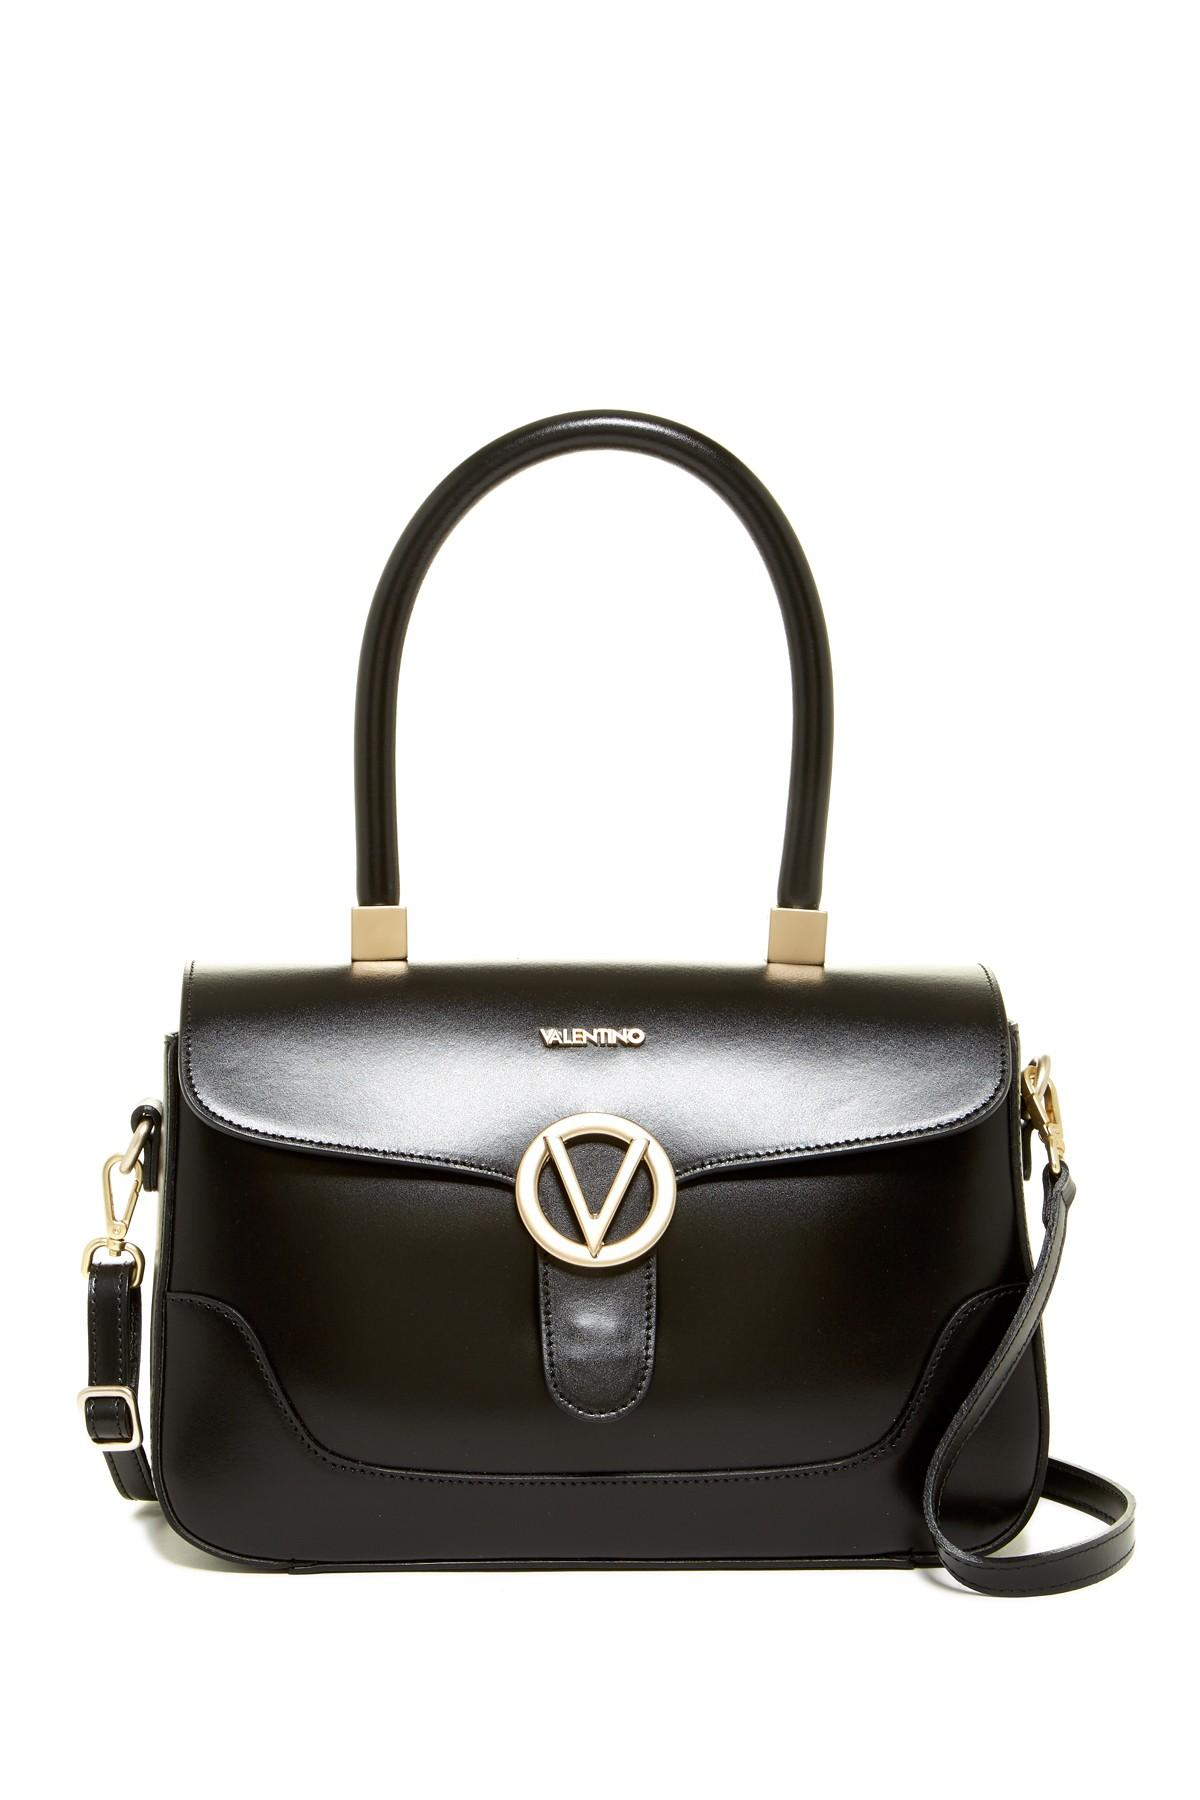 88b1fe7529d Lyst - Valentino By Mario Valentino Gaelle Leather Satchel in Black